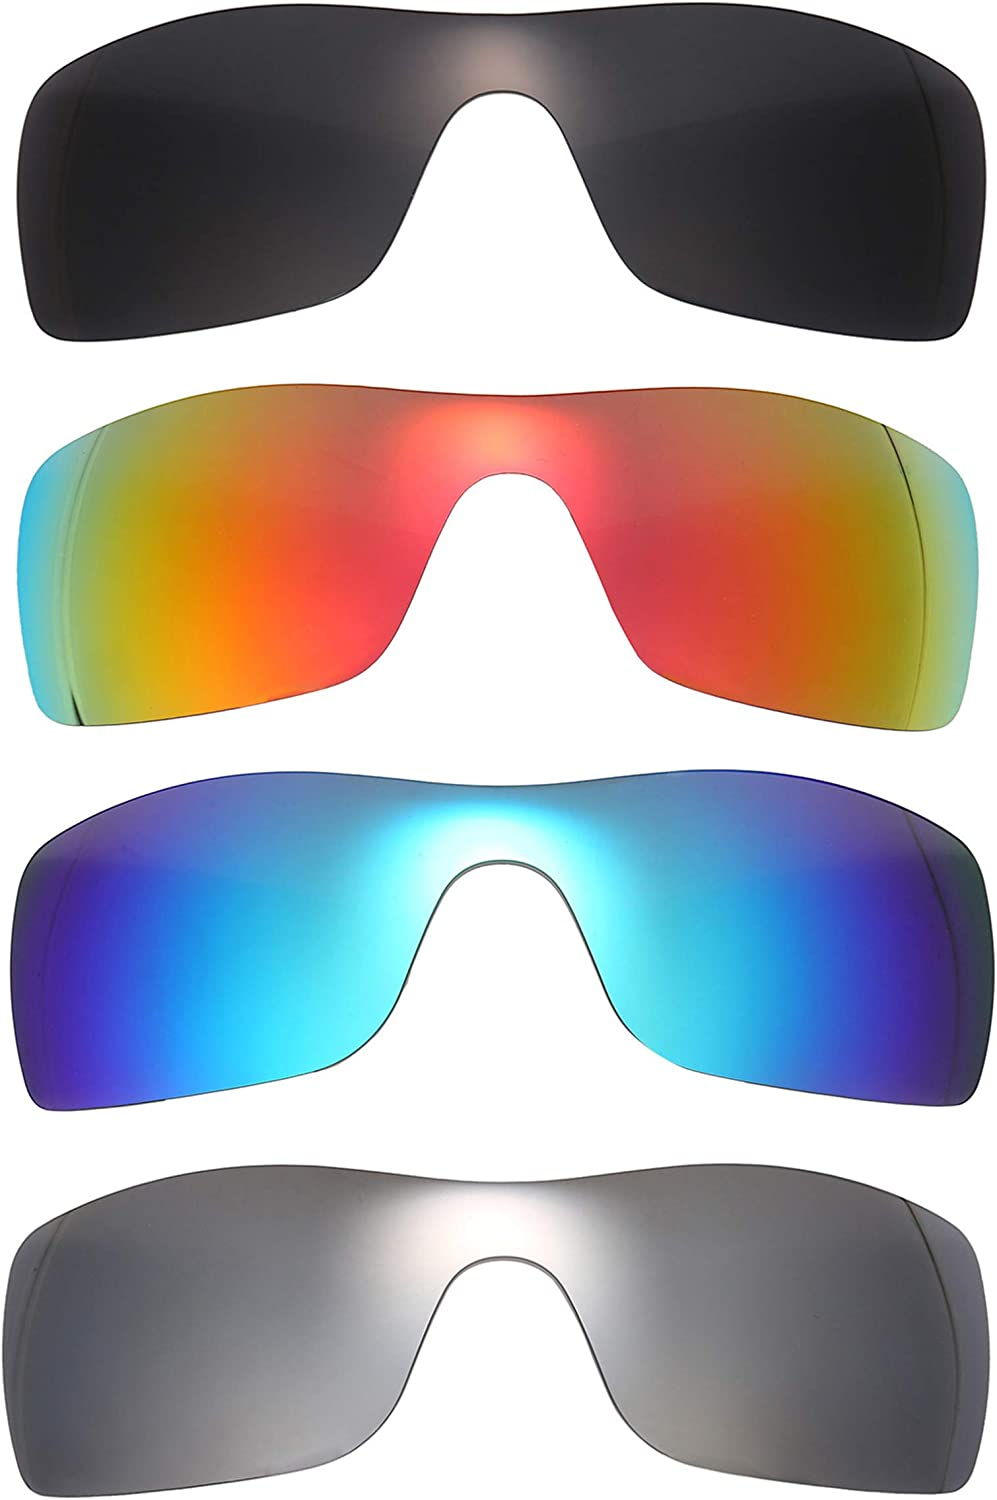 NicelyFit Polarized Replacement Directly managed store Lenses New mail order Shades for Oakley Batwolf